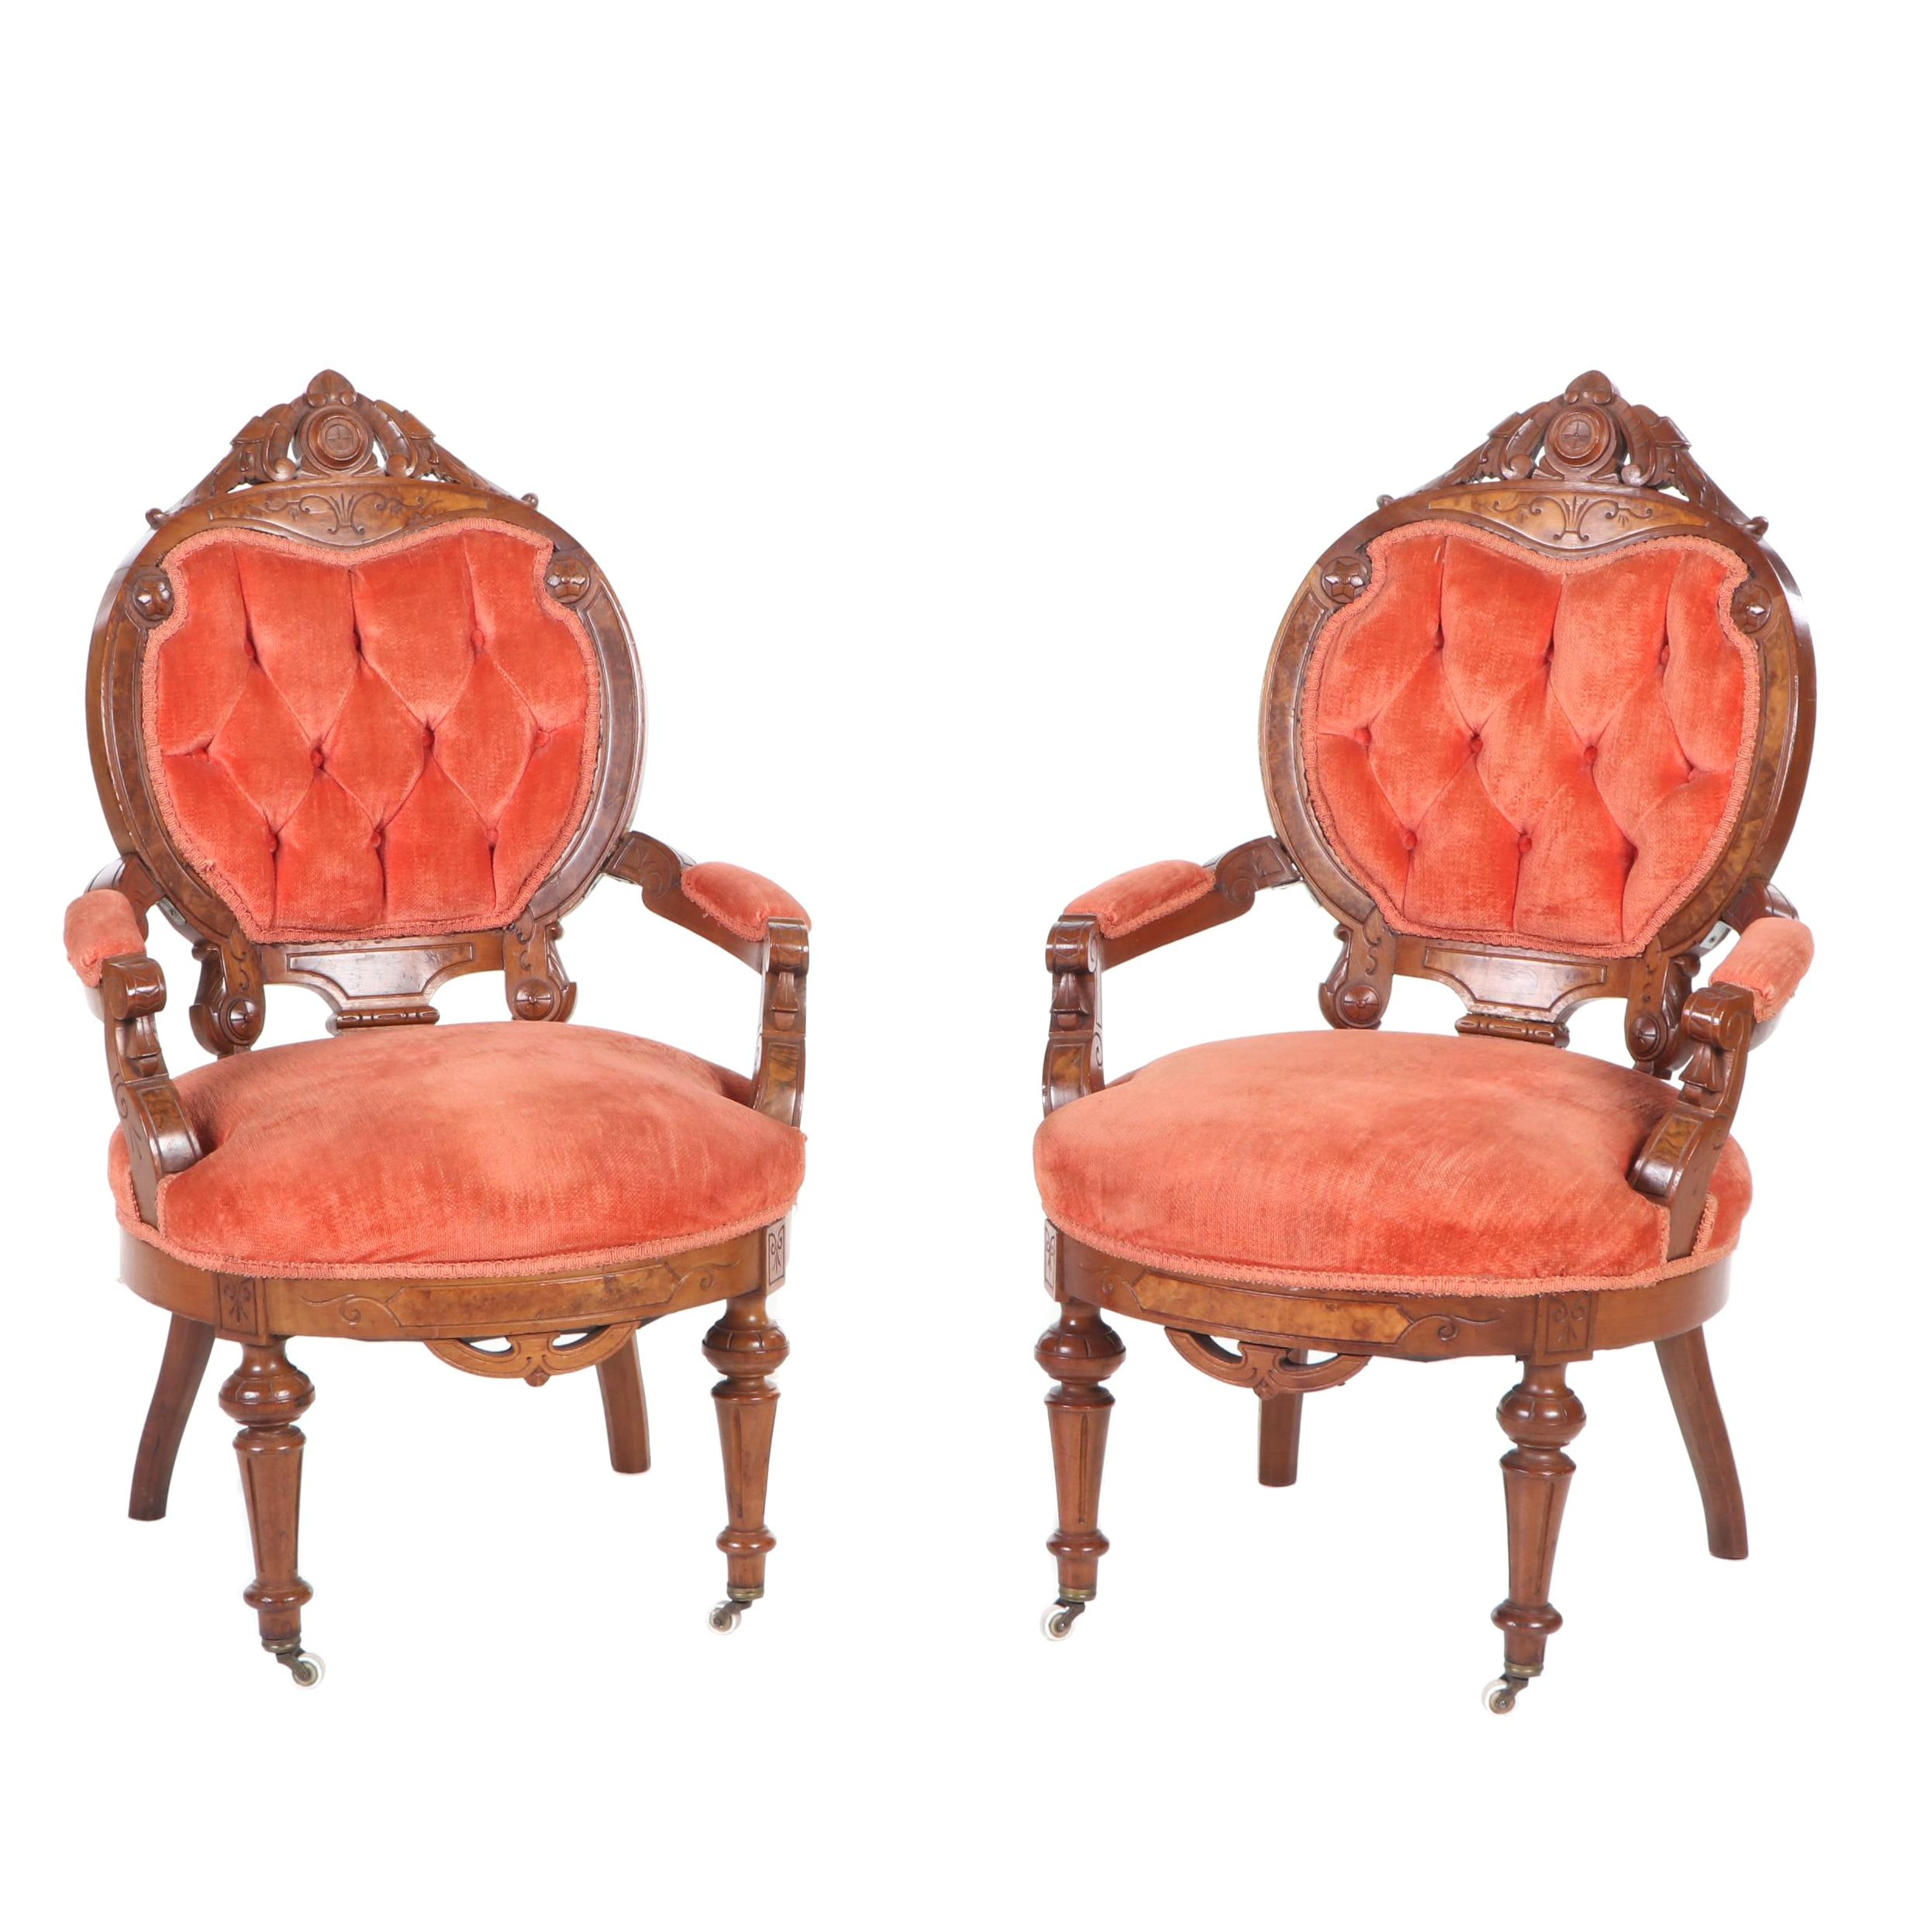 Victorian Eastlake Carved Walnut Parlor Chairs, circa 1900